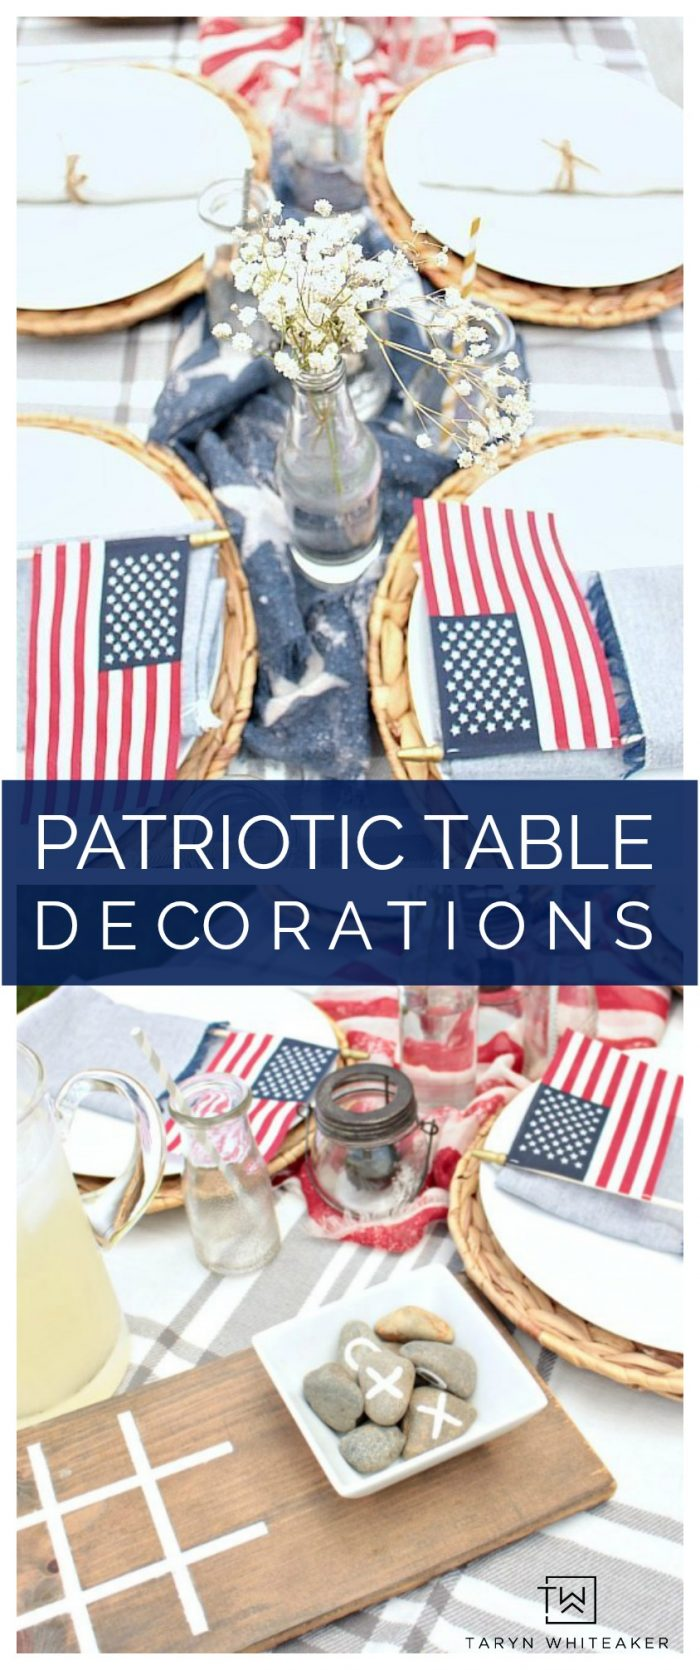 Create your own patriotic table decorations on a budget using household items and dollar stores finds! This red, white and blue table is inexpensive and yet festive!